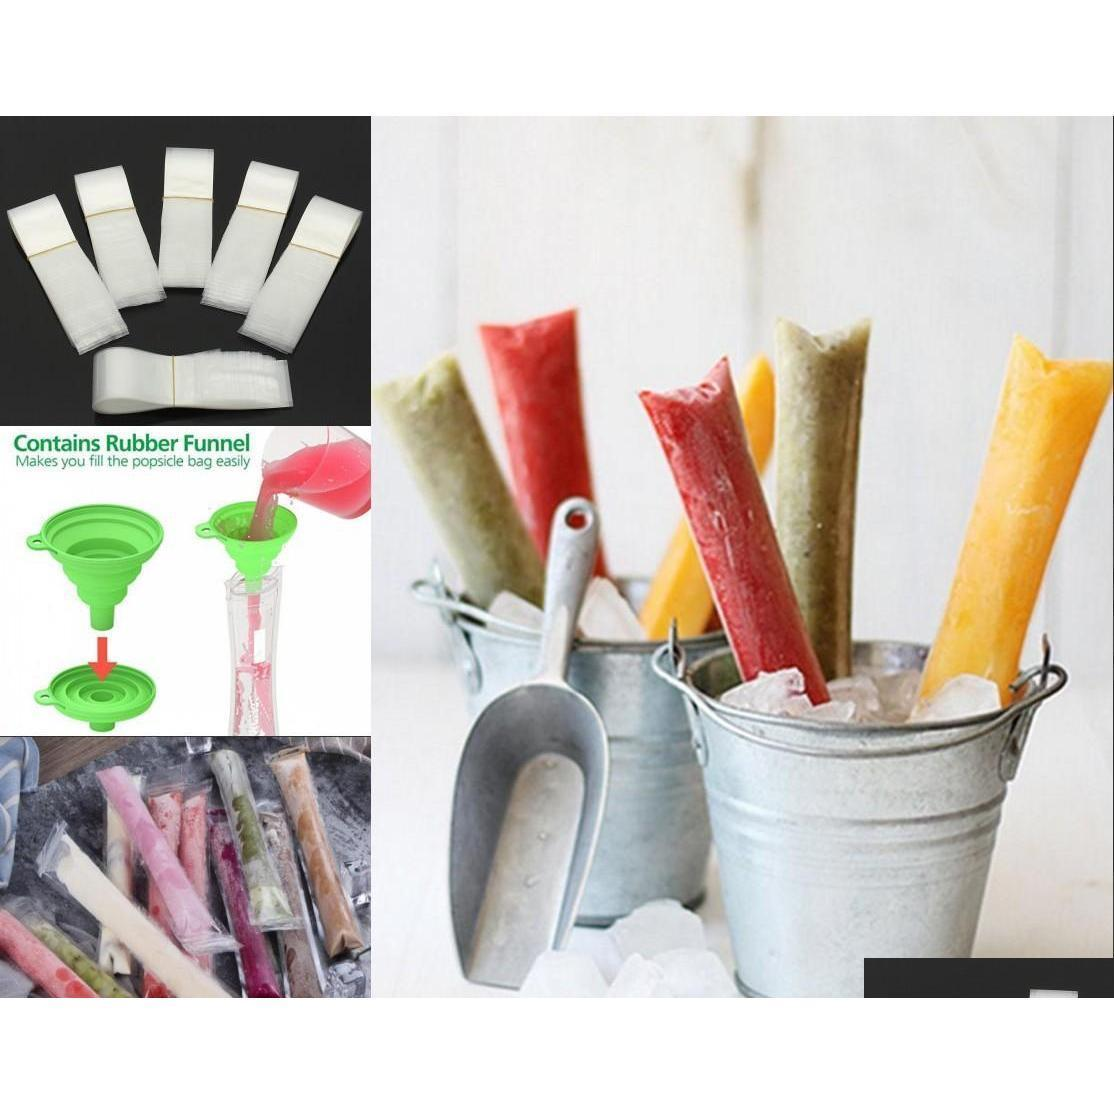 ice popsicle molds bags pop mold pouch with zip seals funnel diy zip-top ice pop pouches for gogurt, ice candy or ze pops